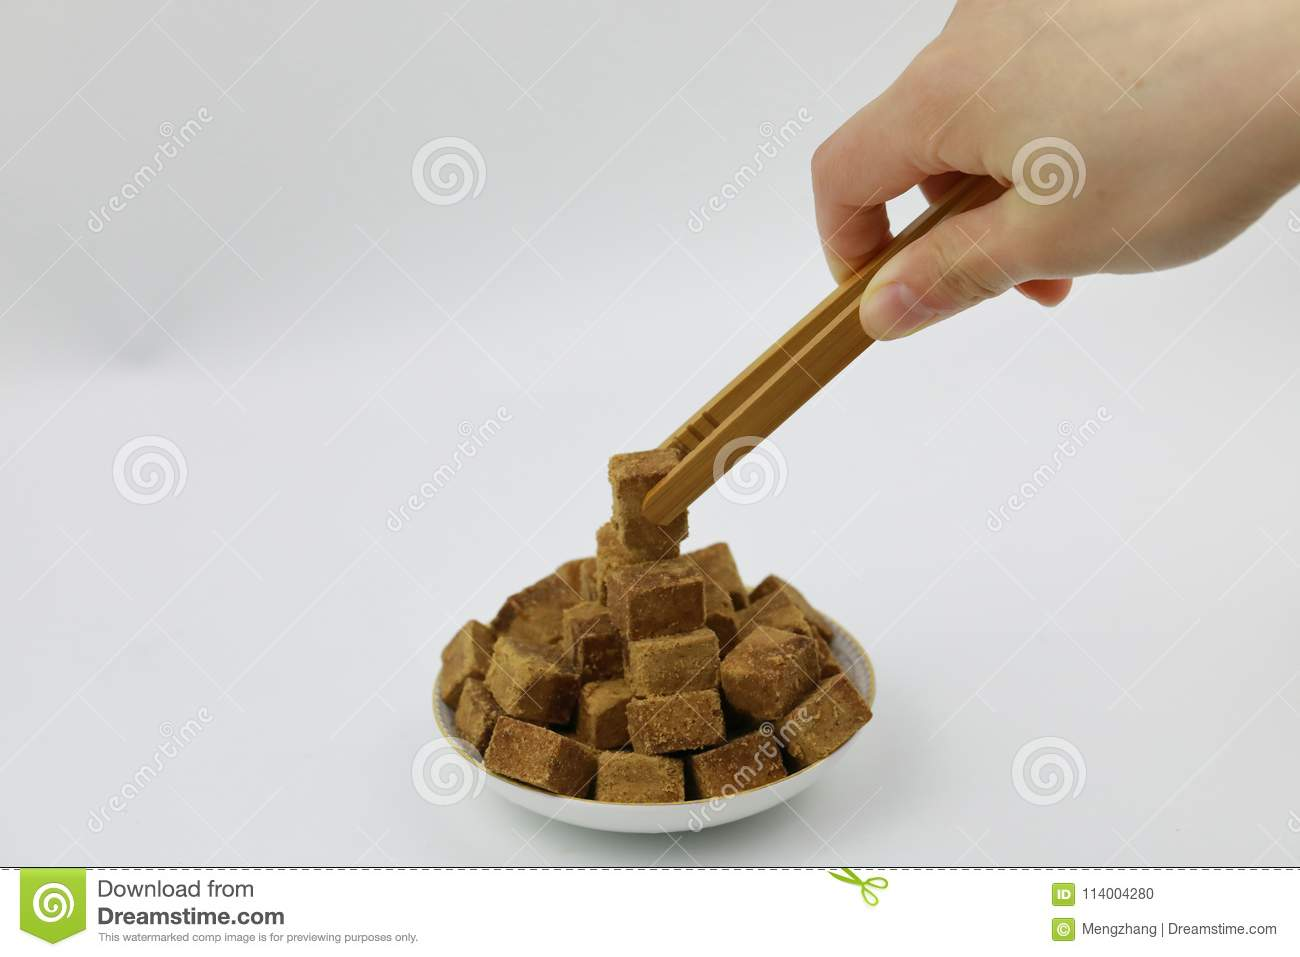 A pile of brown sugar cubes on a white plate woman hand hold wooden tweezers on white background